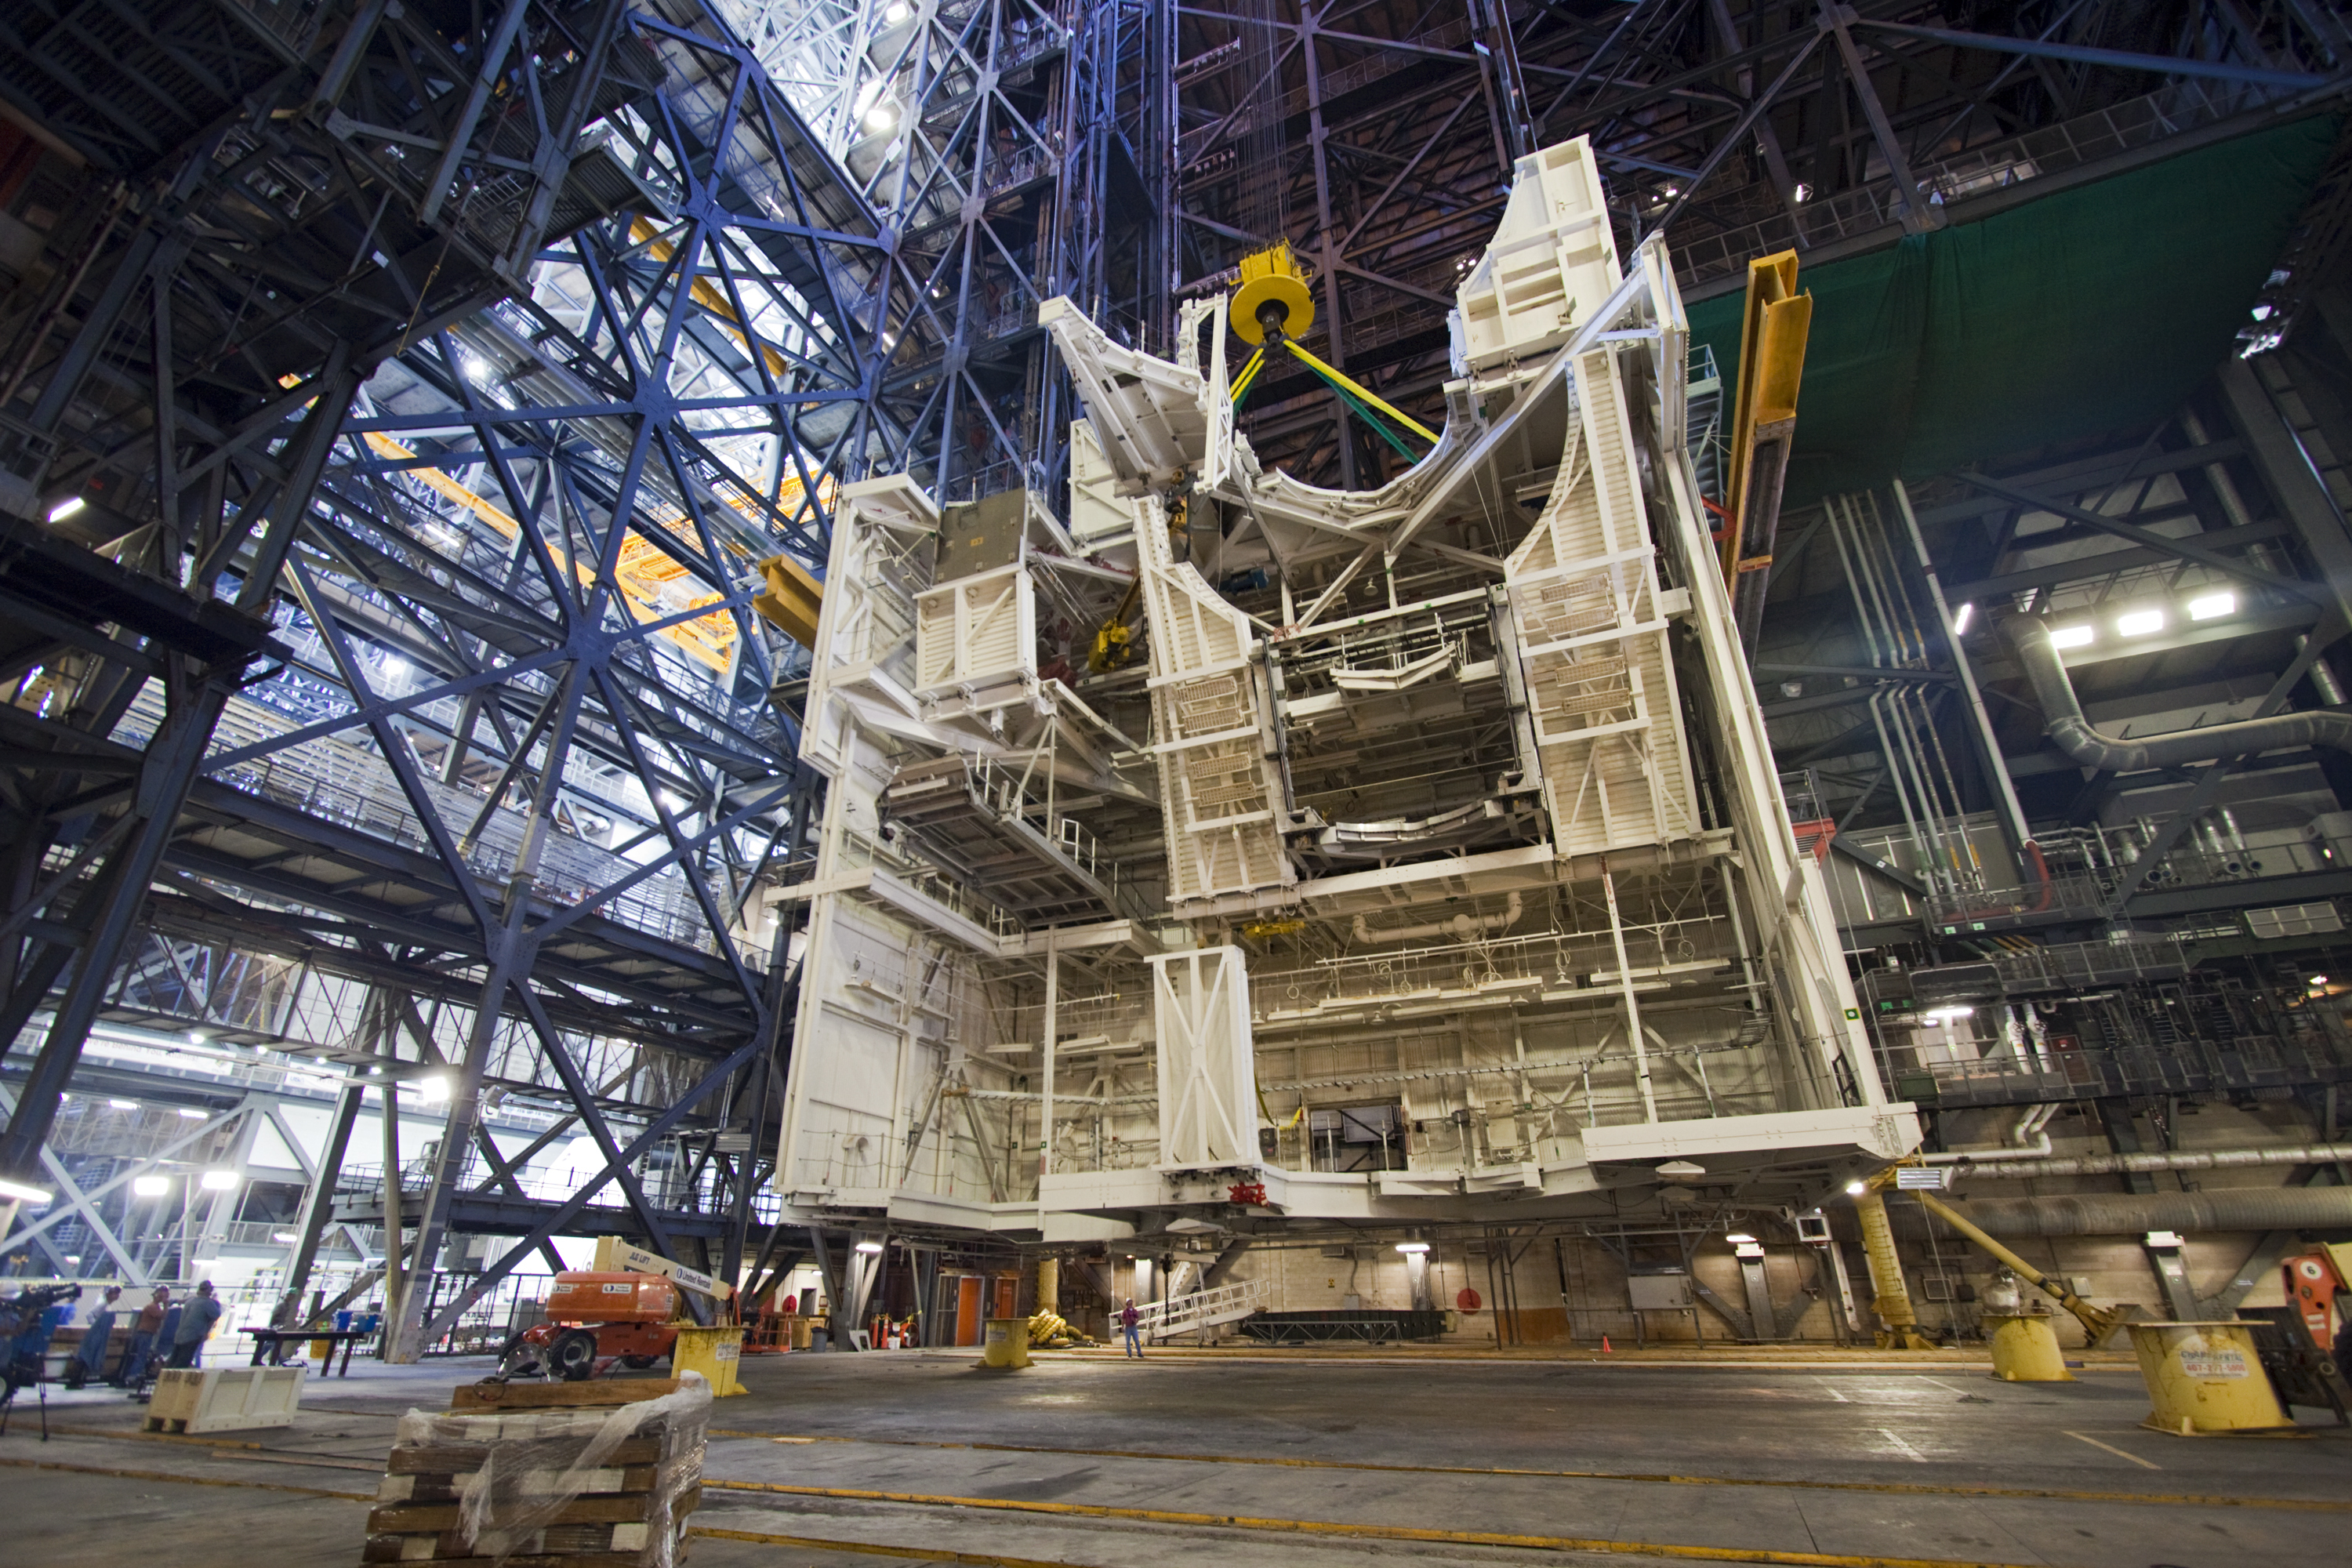 http://www.nasa.gov/images/content/705363main_Platform%20to%20VAB%20Floor-Full.jpg